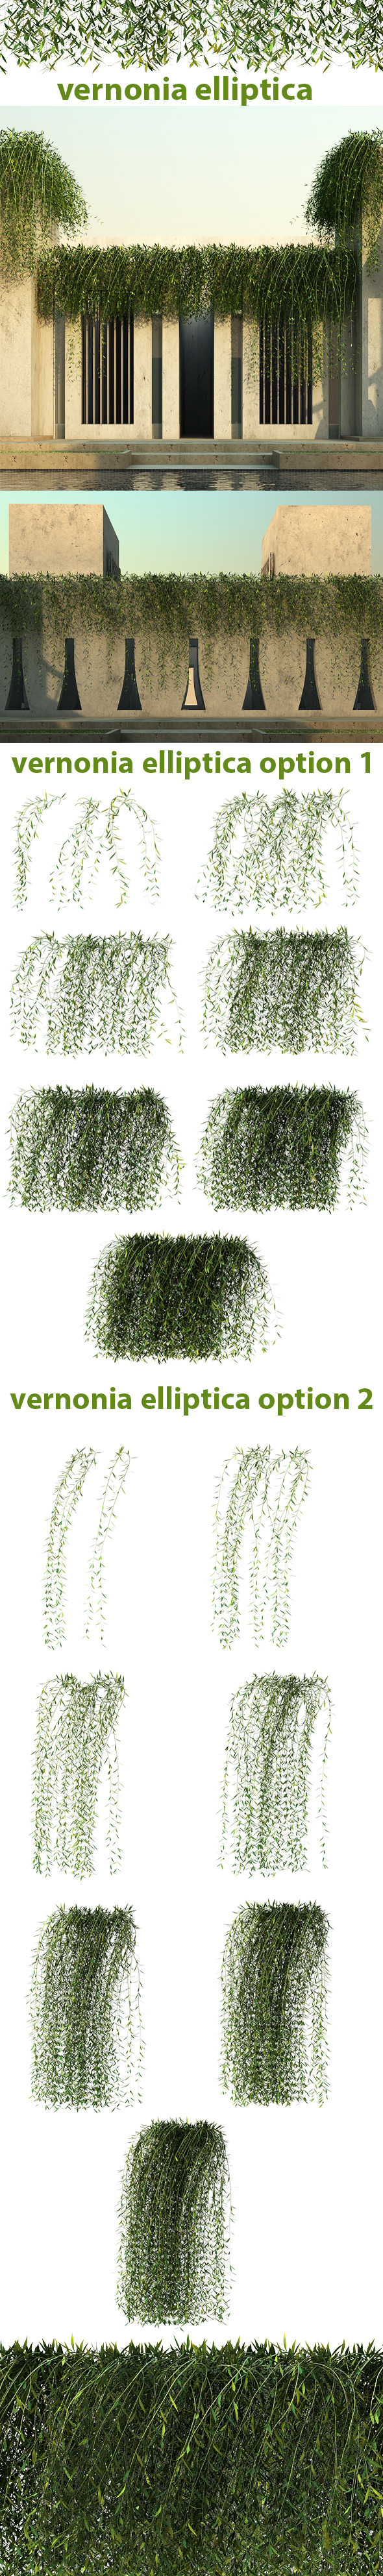 Vernonia Elliptica - 3DOcean Item for Sale